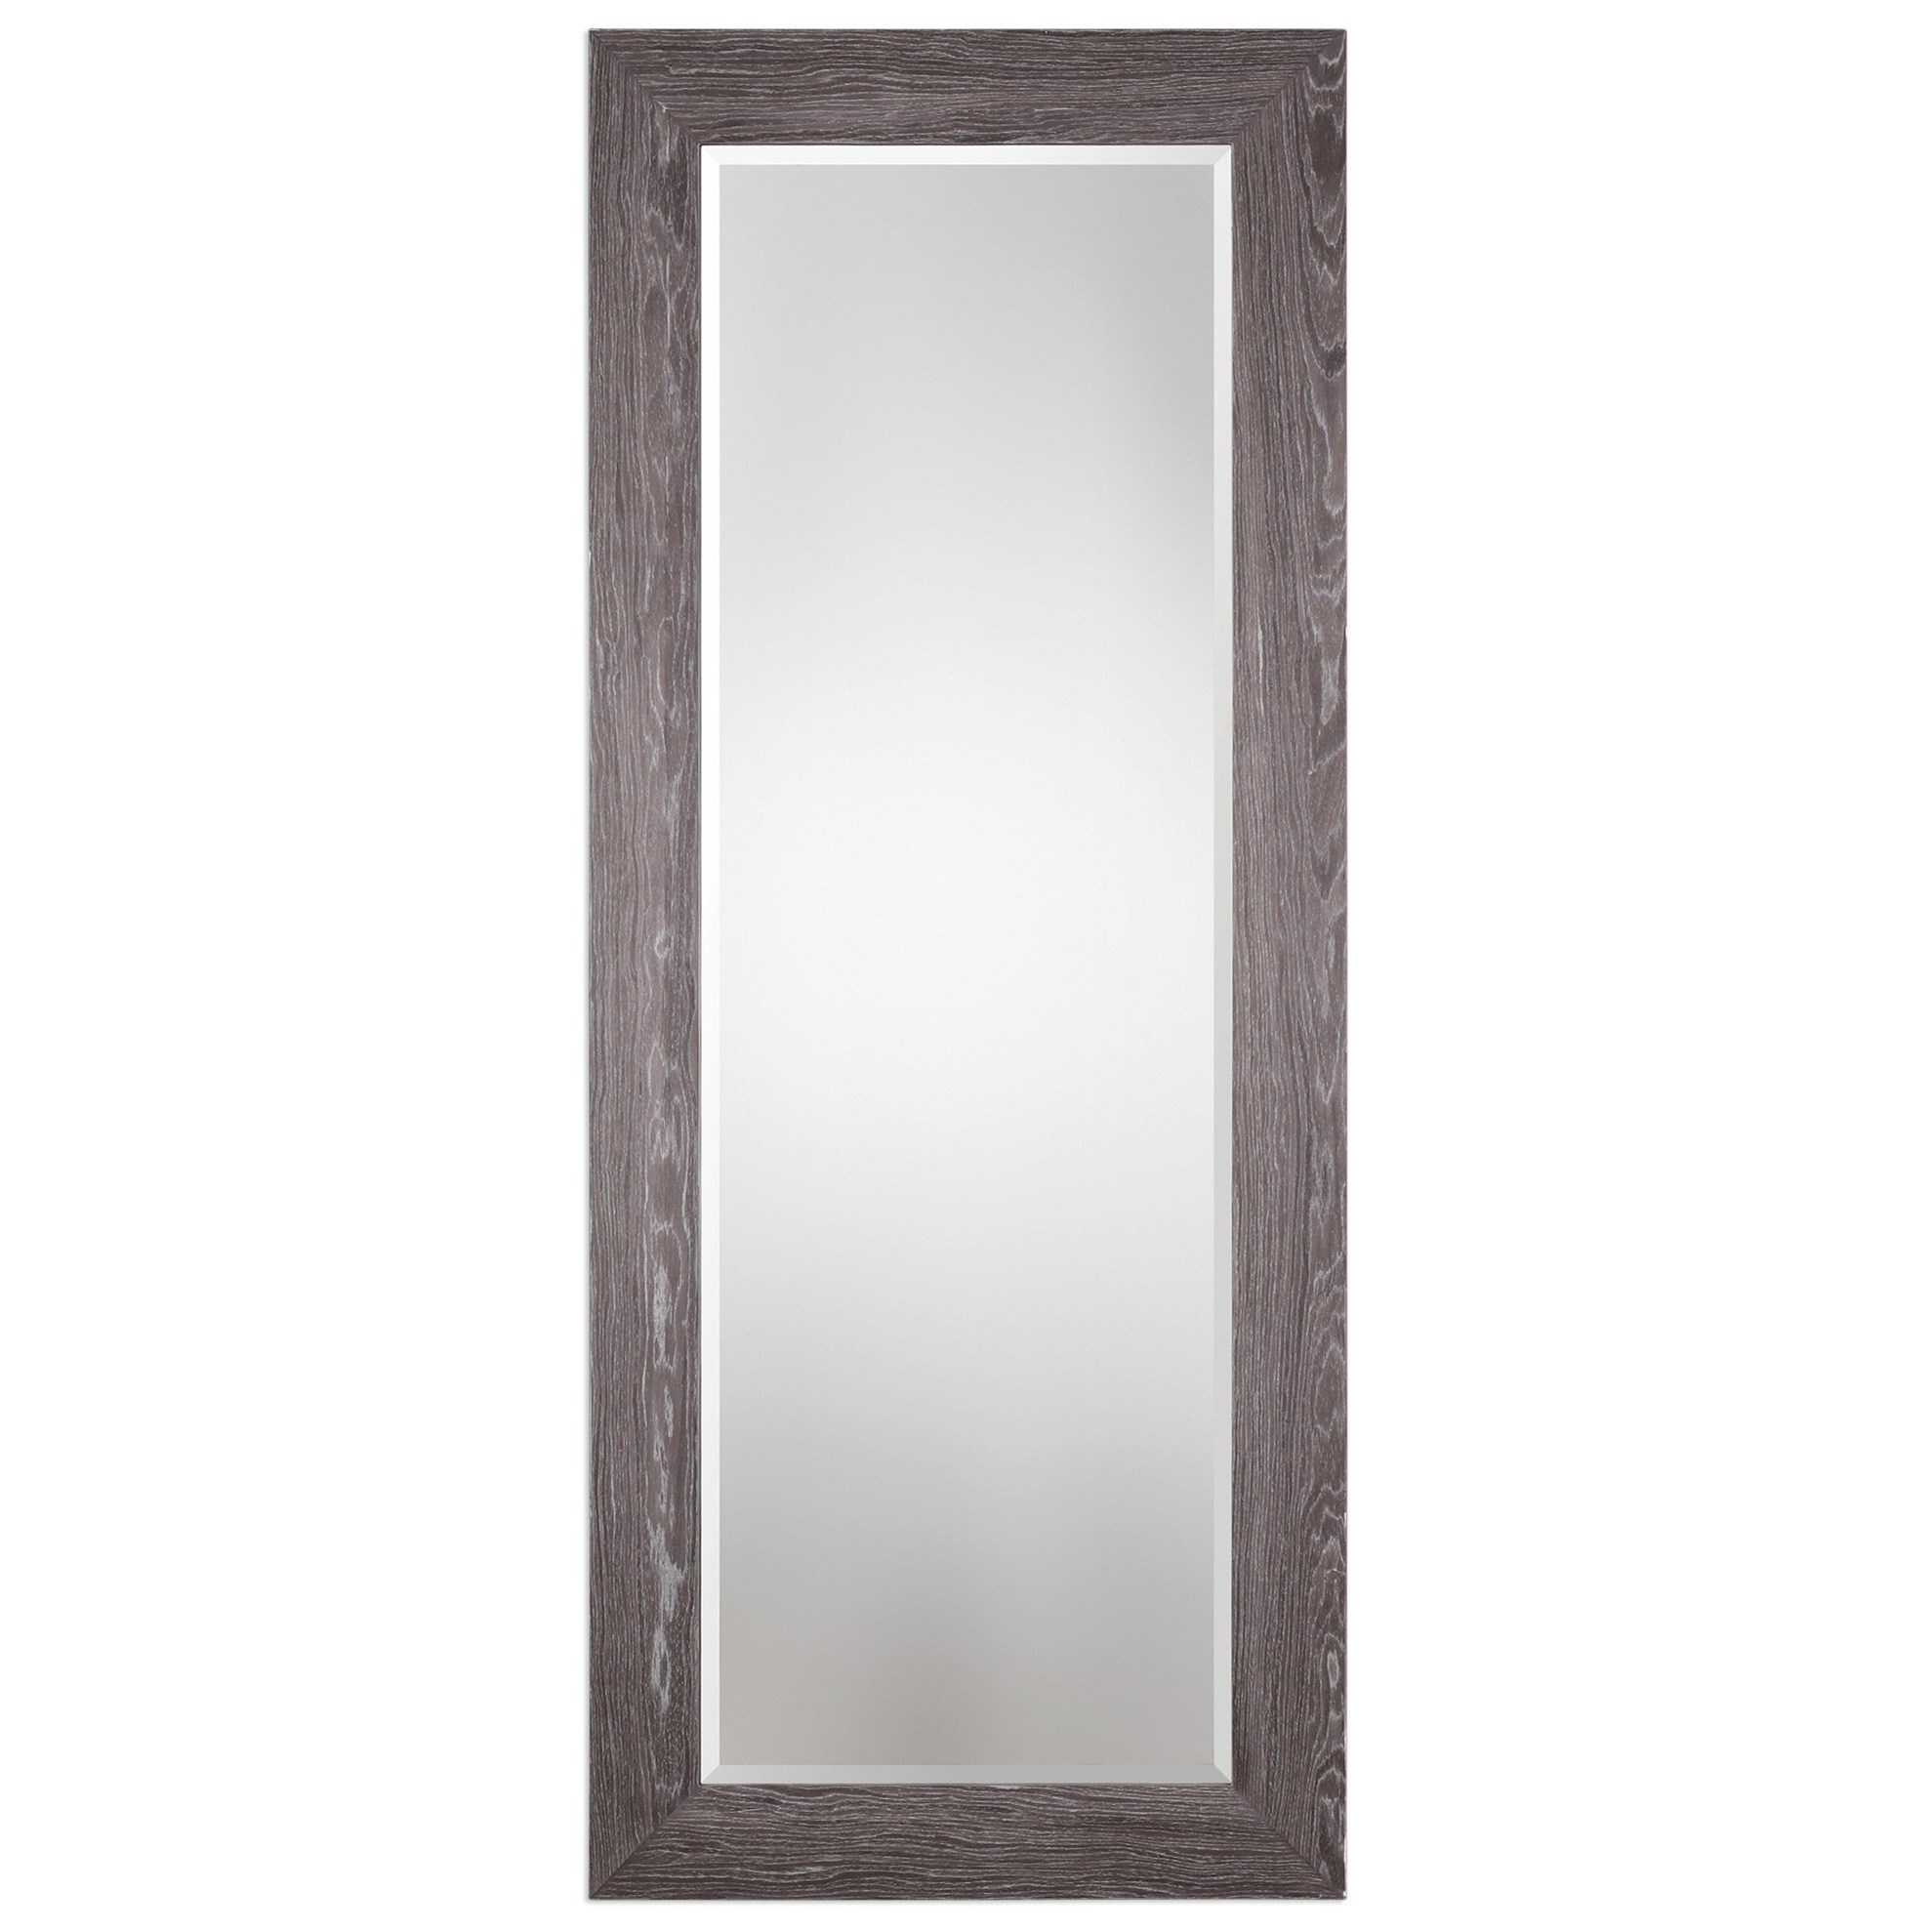 Uttermost Mirrors Beresford - Item Number: 09167